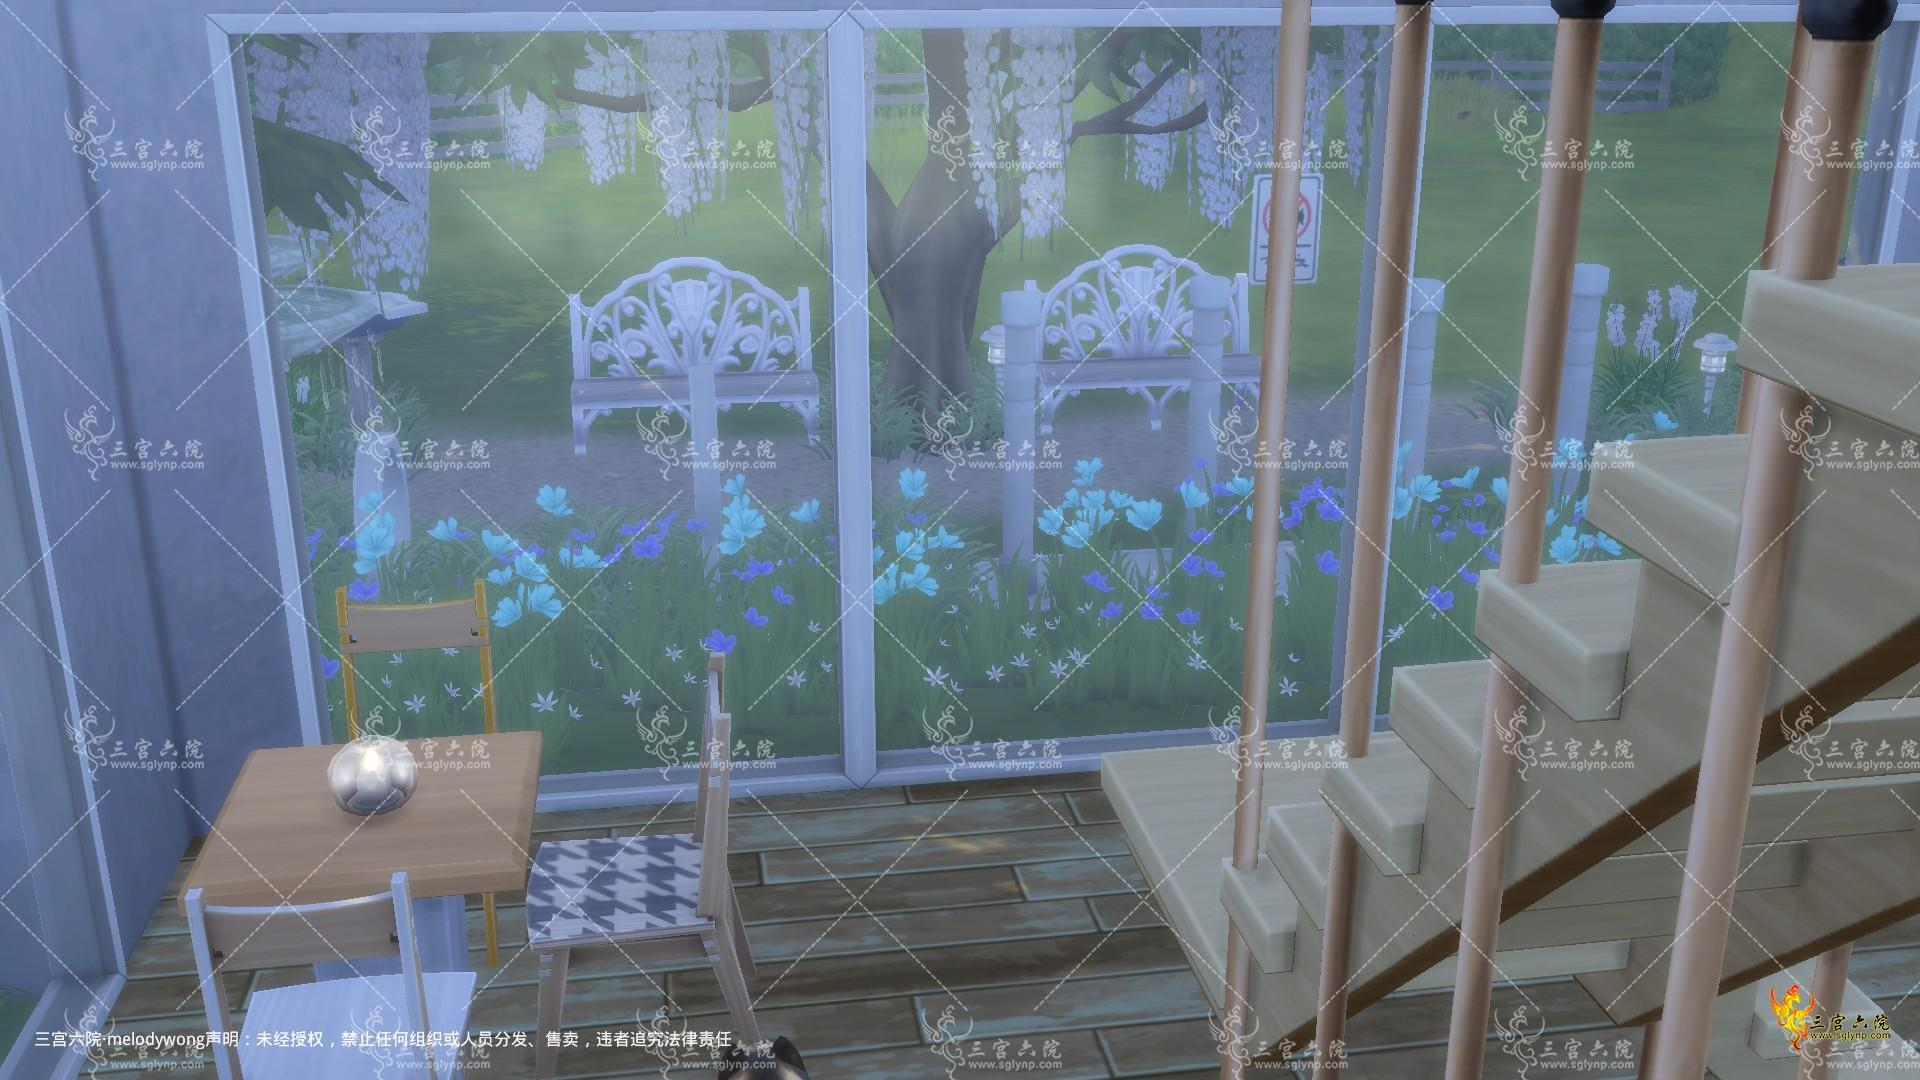 The Sims 4 2021_8_26 下午 09_59_56.png